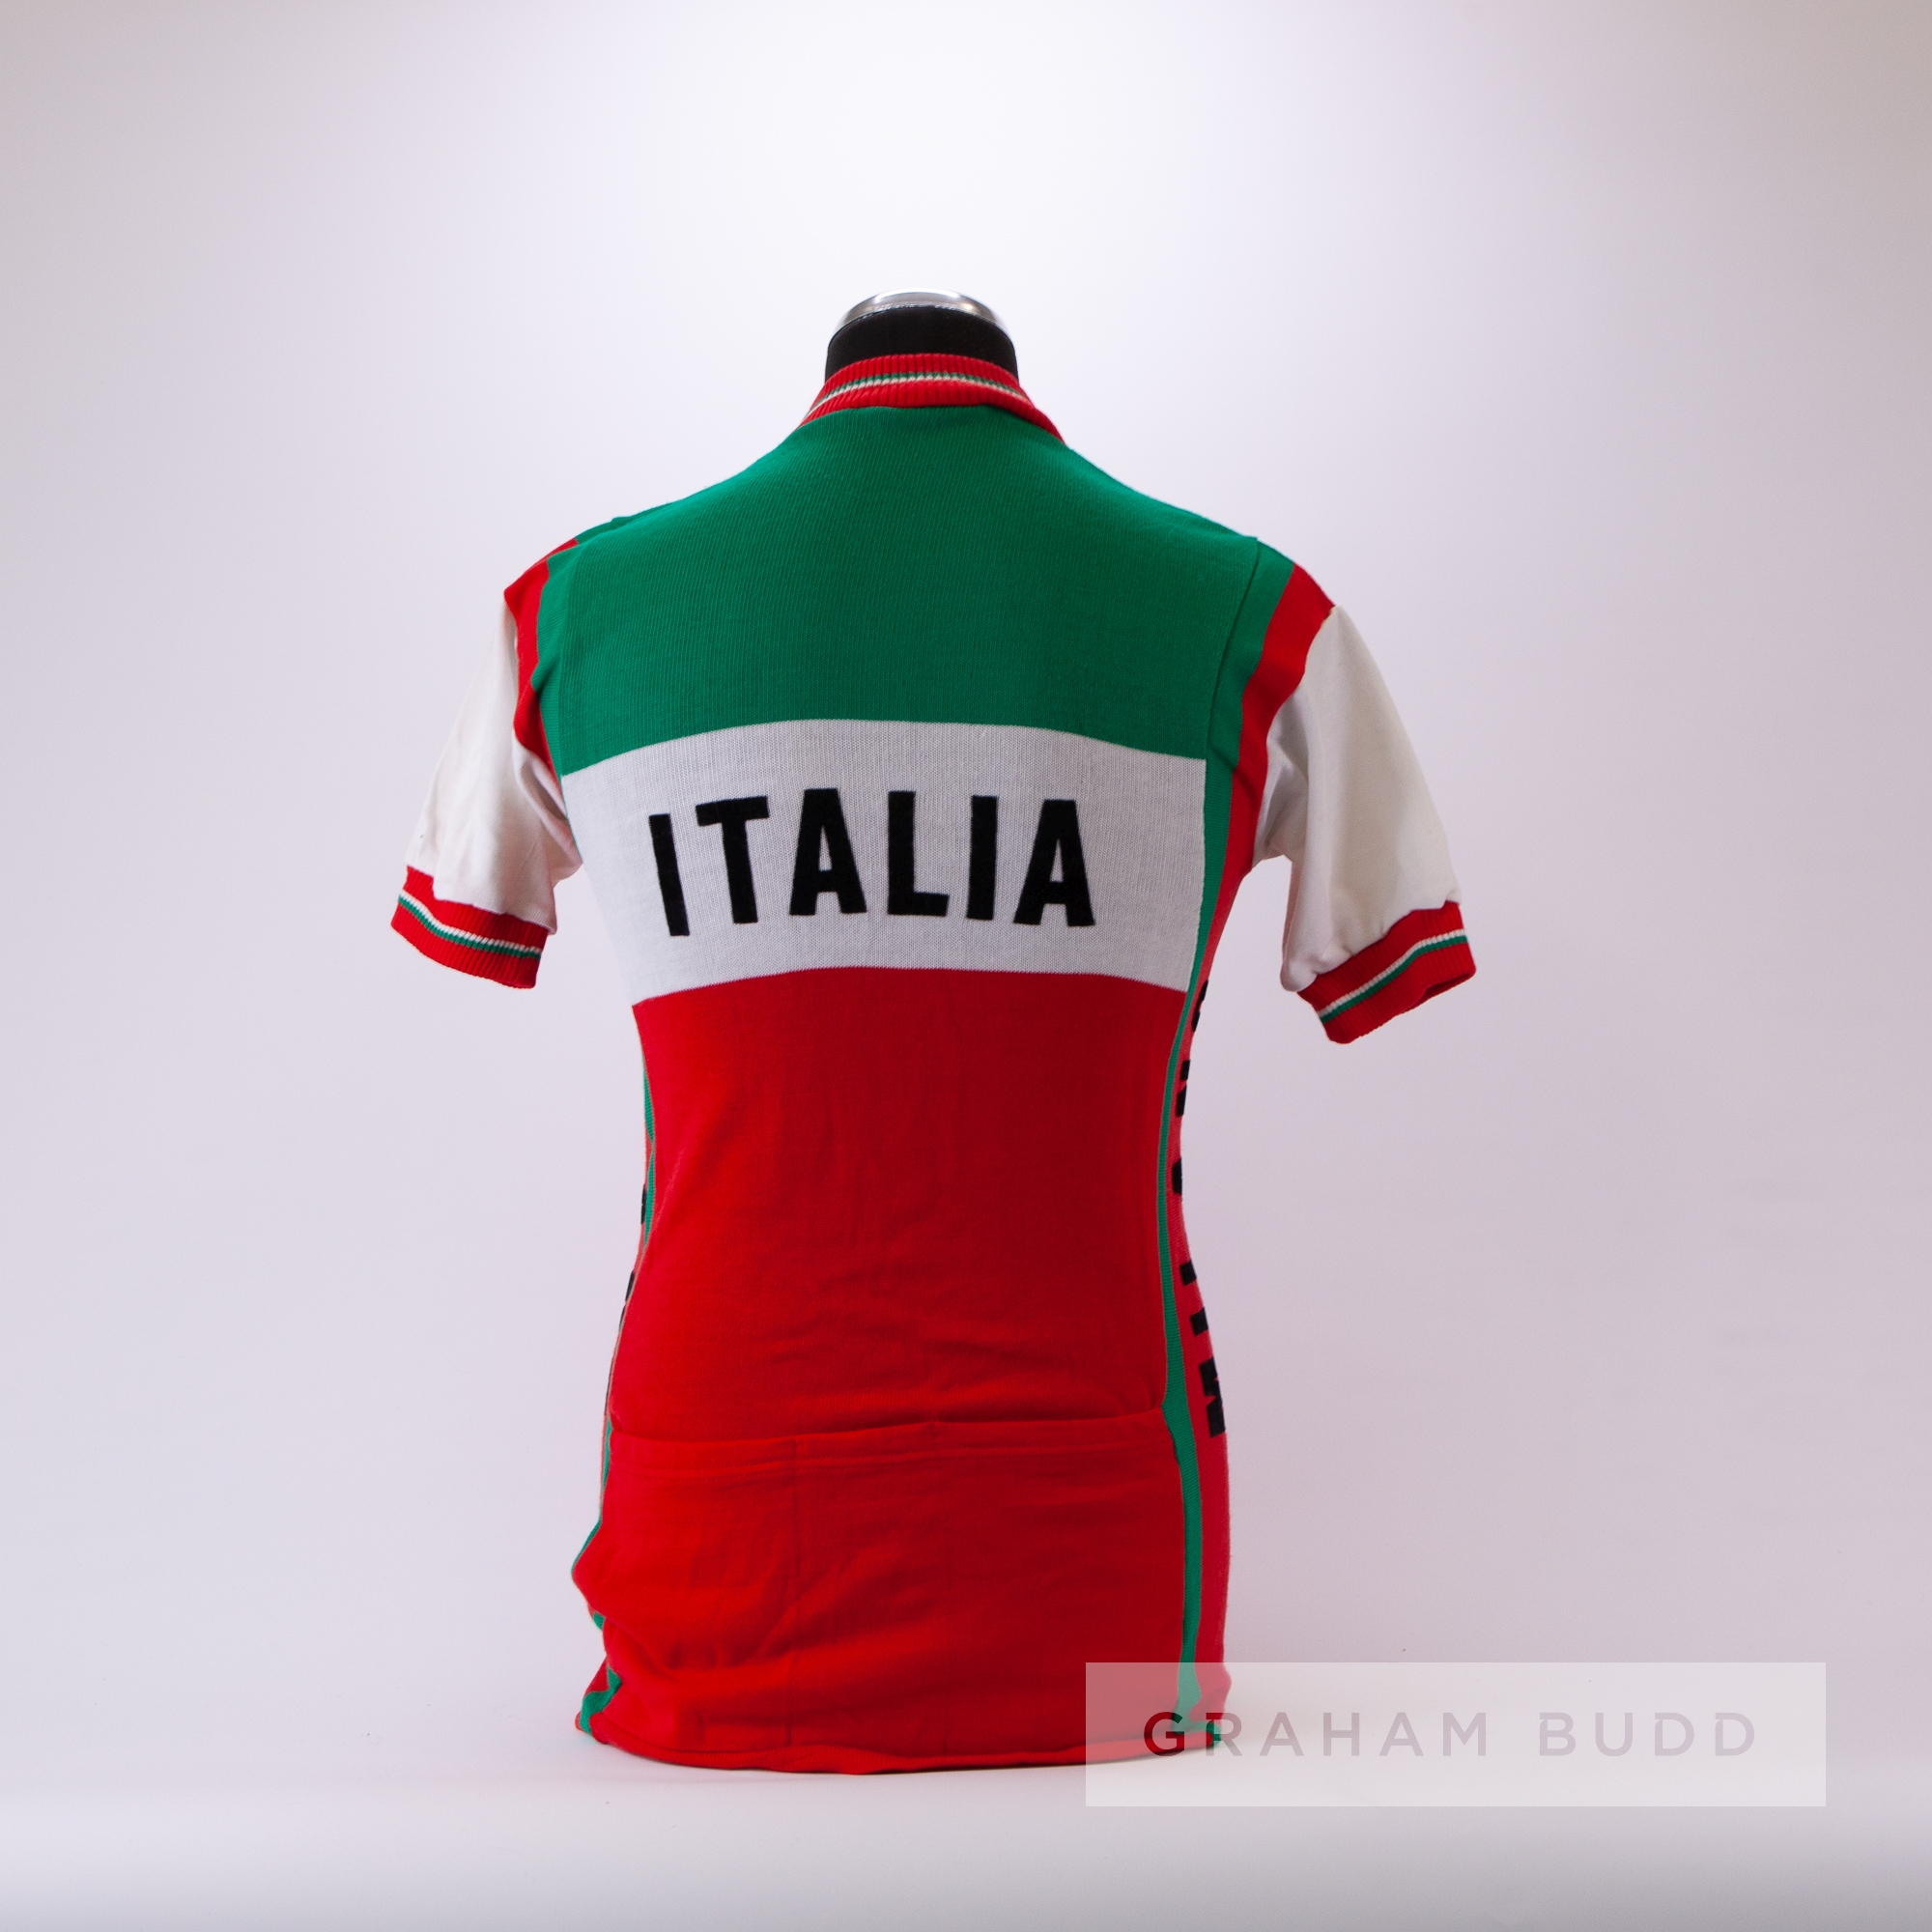 1969 green, white and red vintage Italia Pink Soda Cycling race jersey, scarce, wool short-sleeved - Image 4 of 4